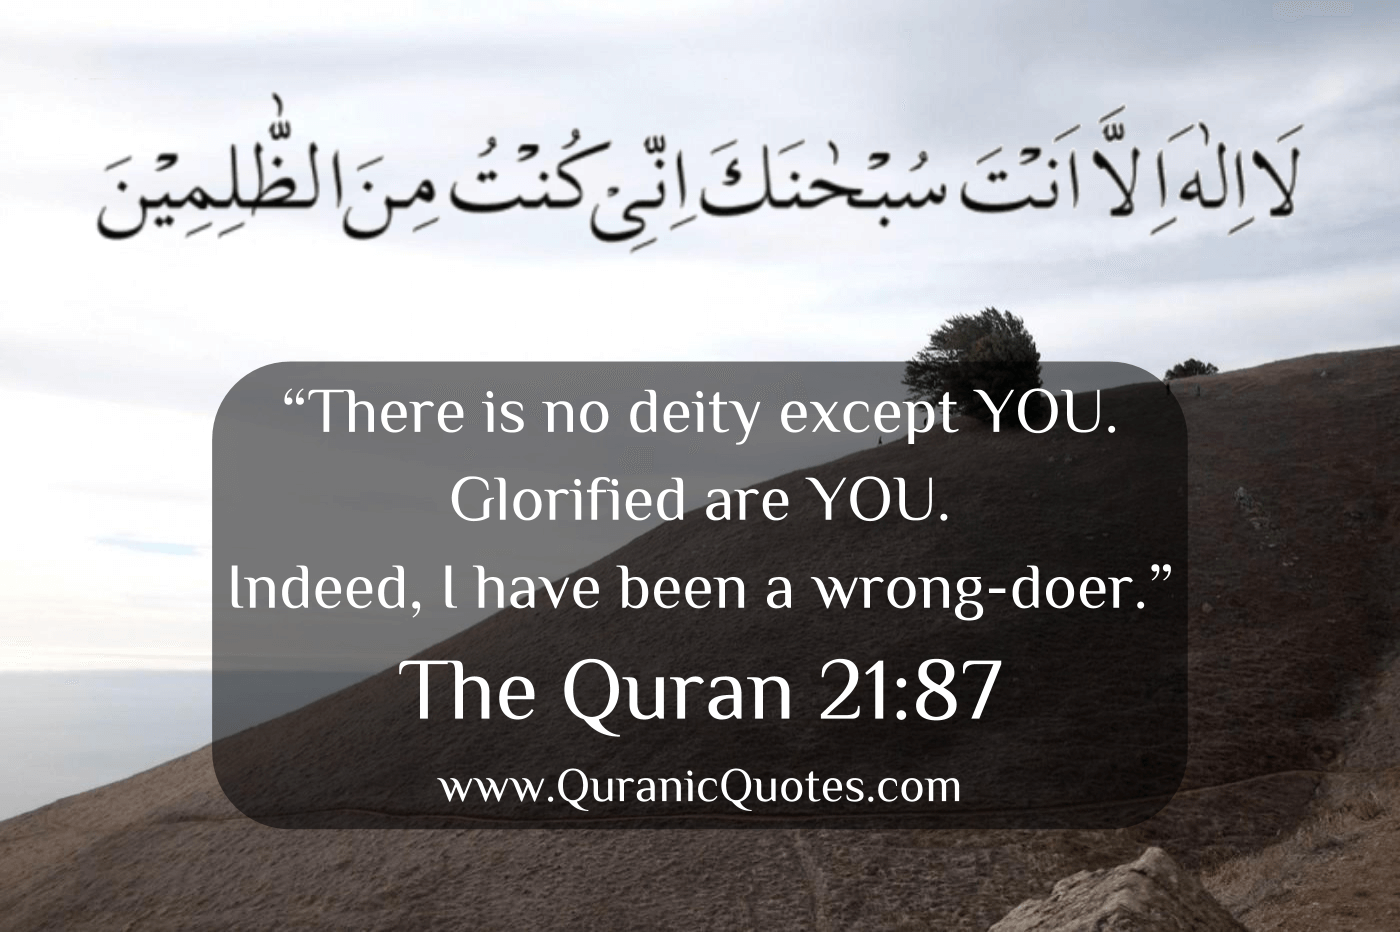 Quotes Quran 291 Best Quranic Quotes Images On Pinterest  Quran Quotes Allah